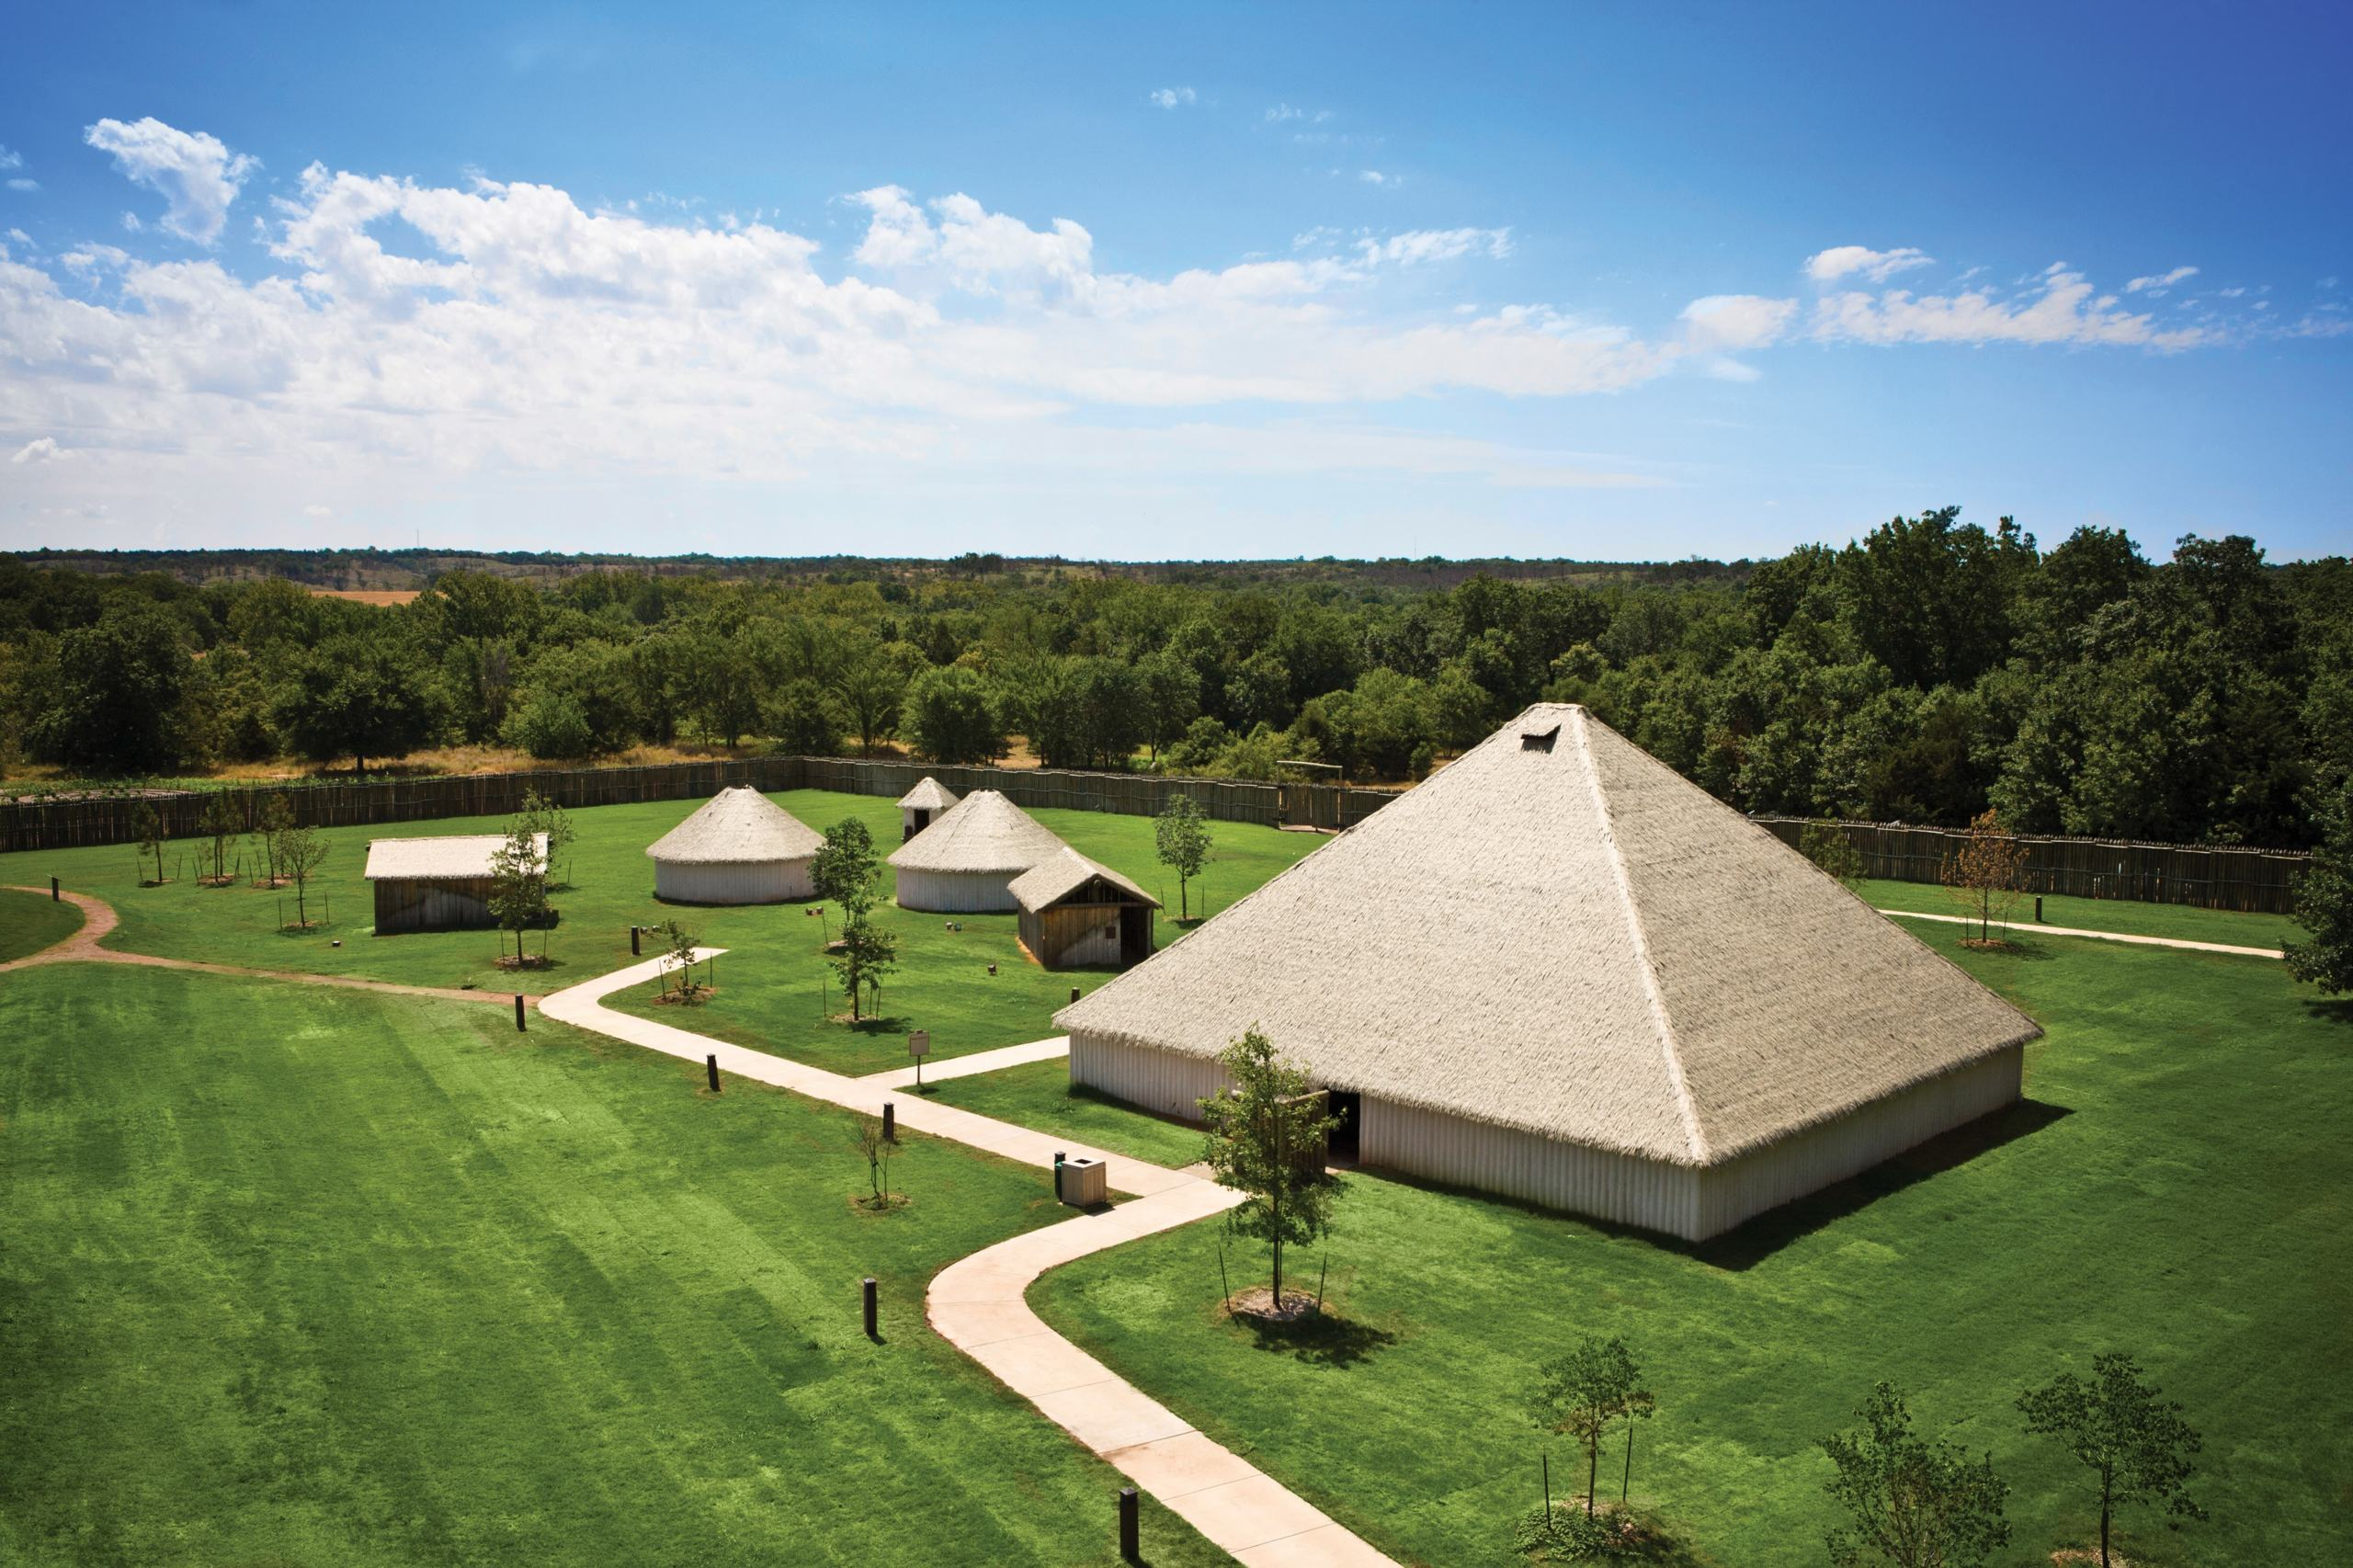 Aerial view of Chickasaw Cultural Center in Oklahoma